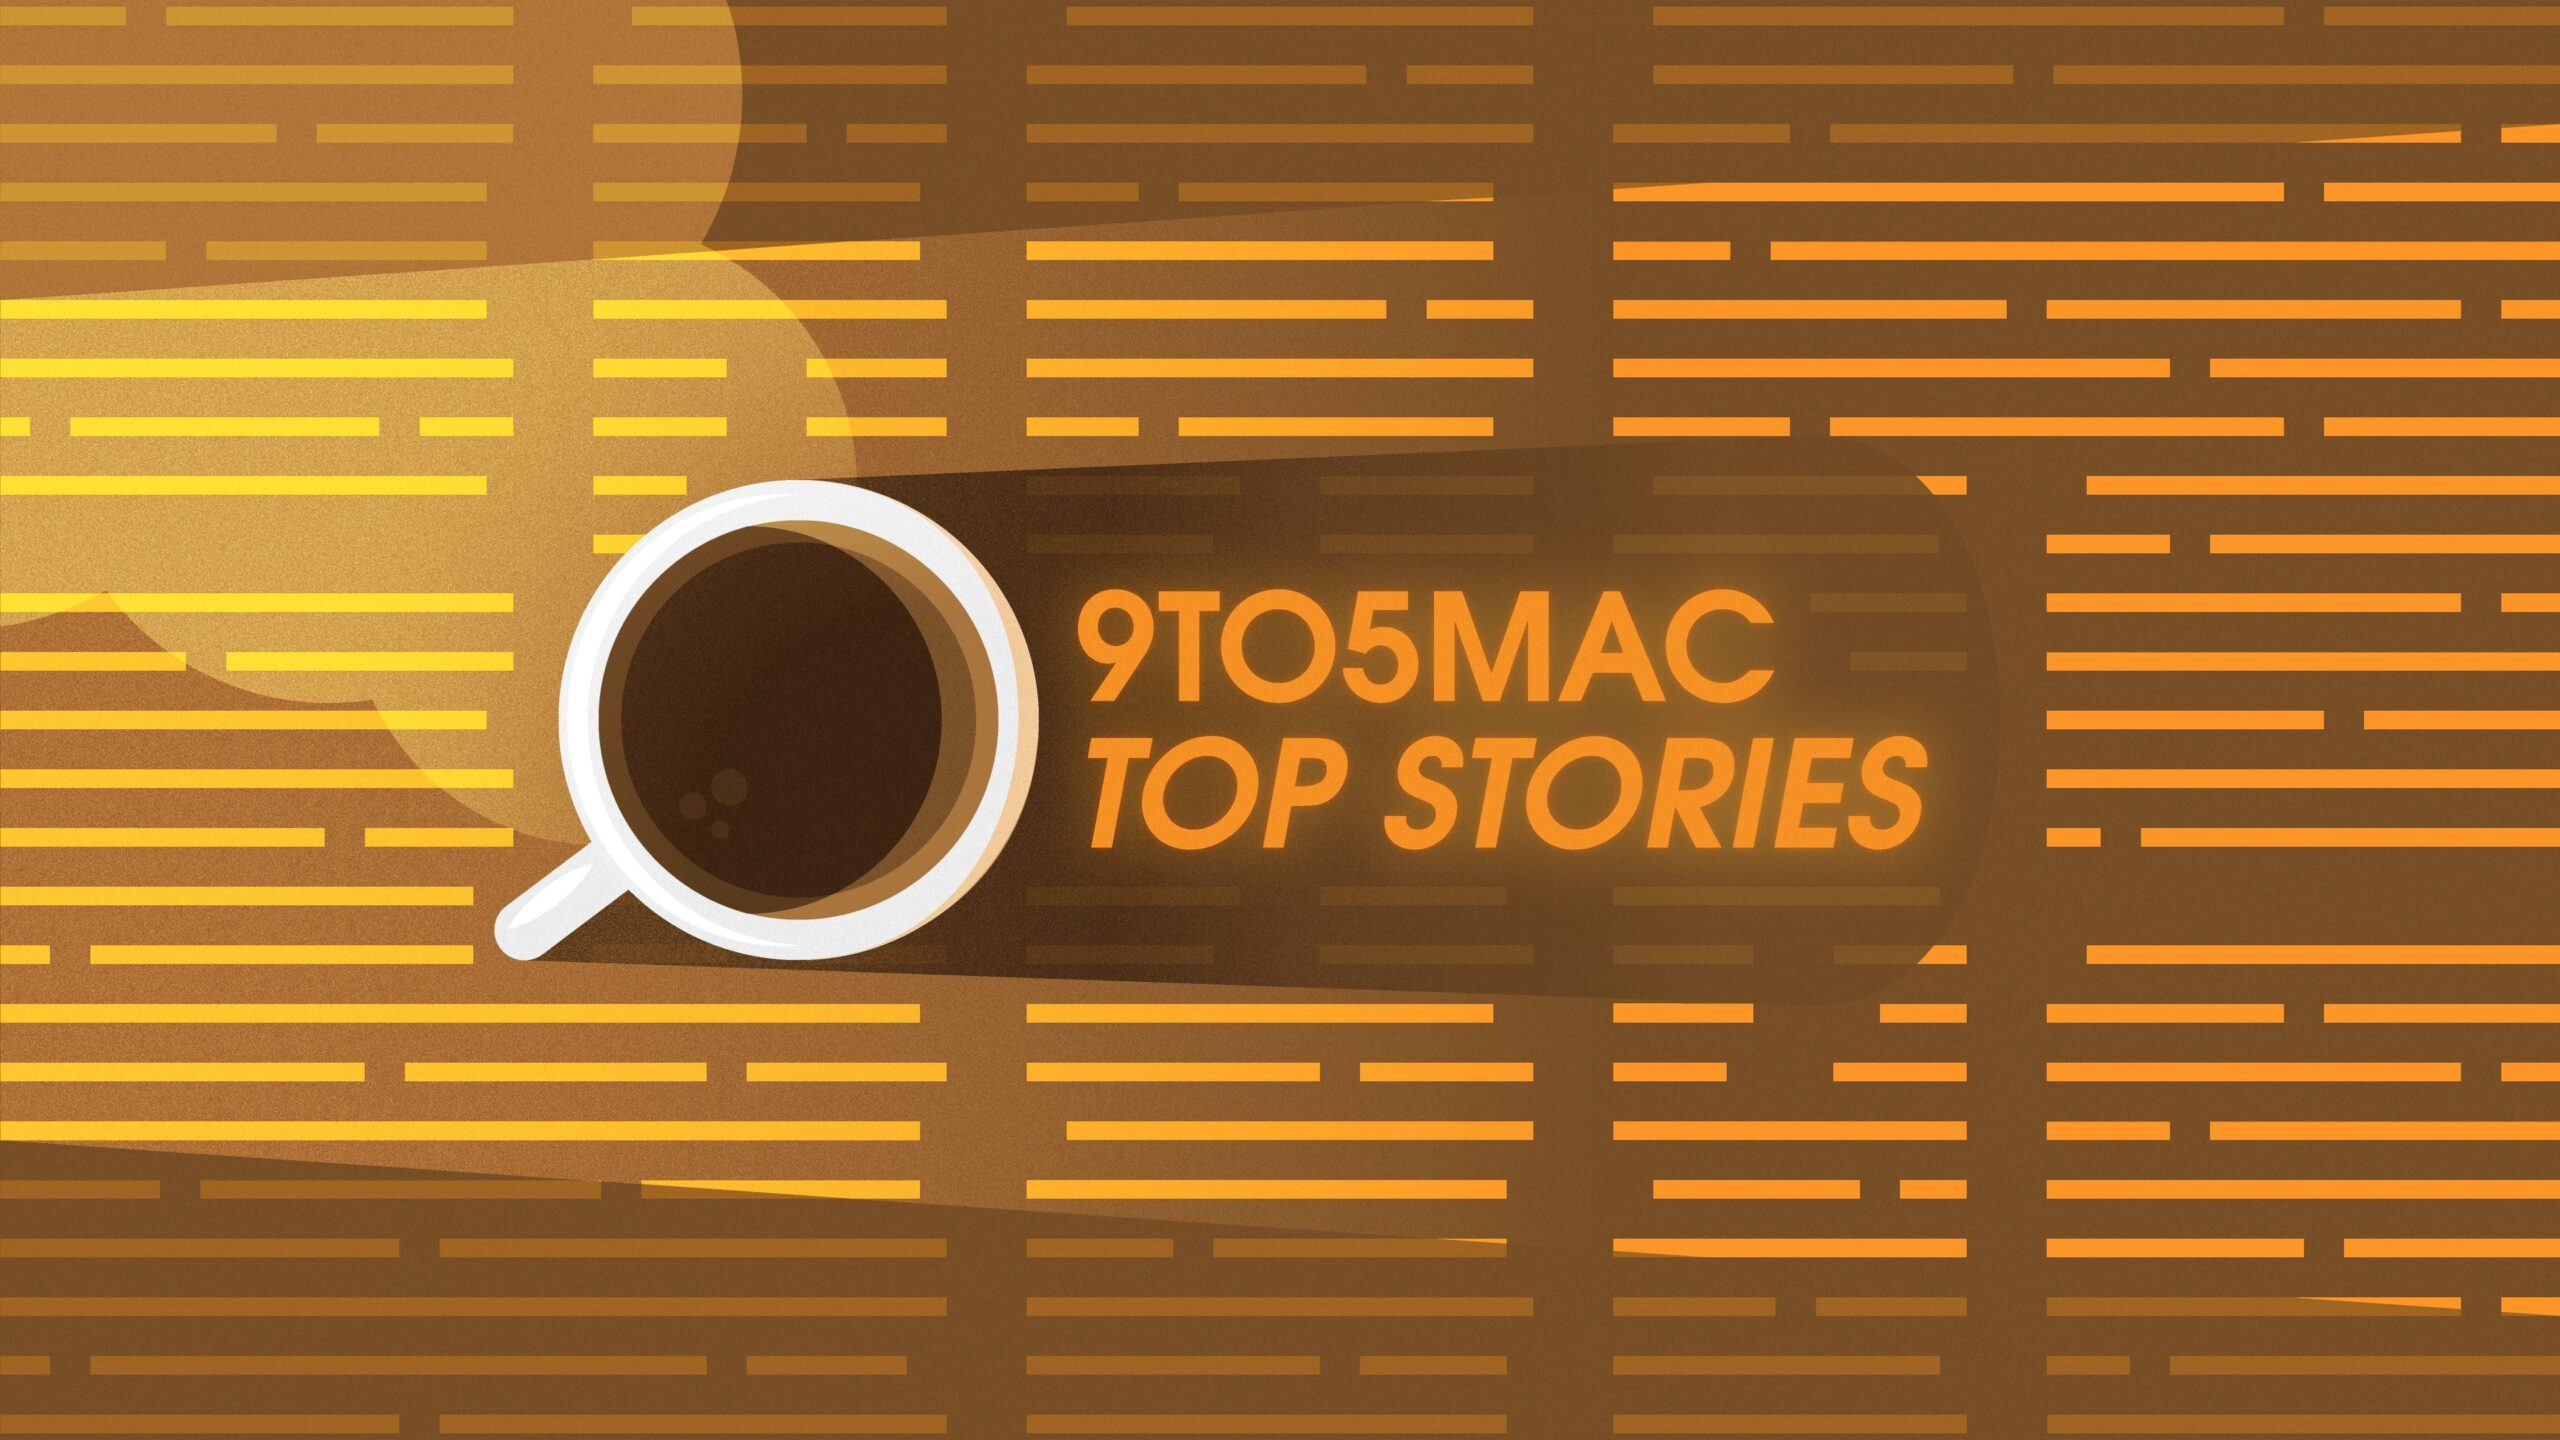 This week's top stories: Apple event expectations, Epic Games ruling, and more